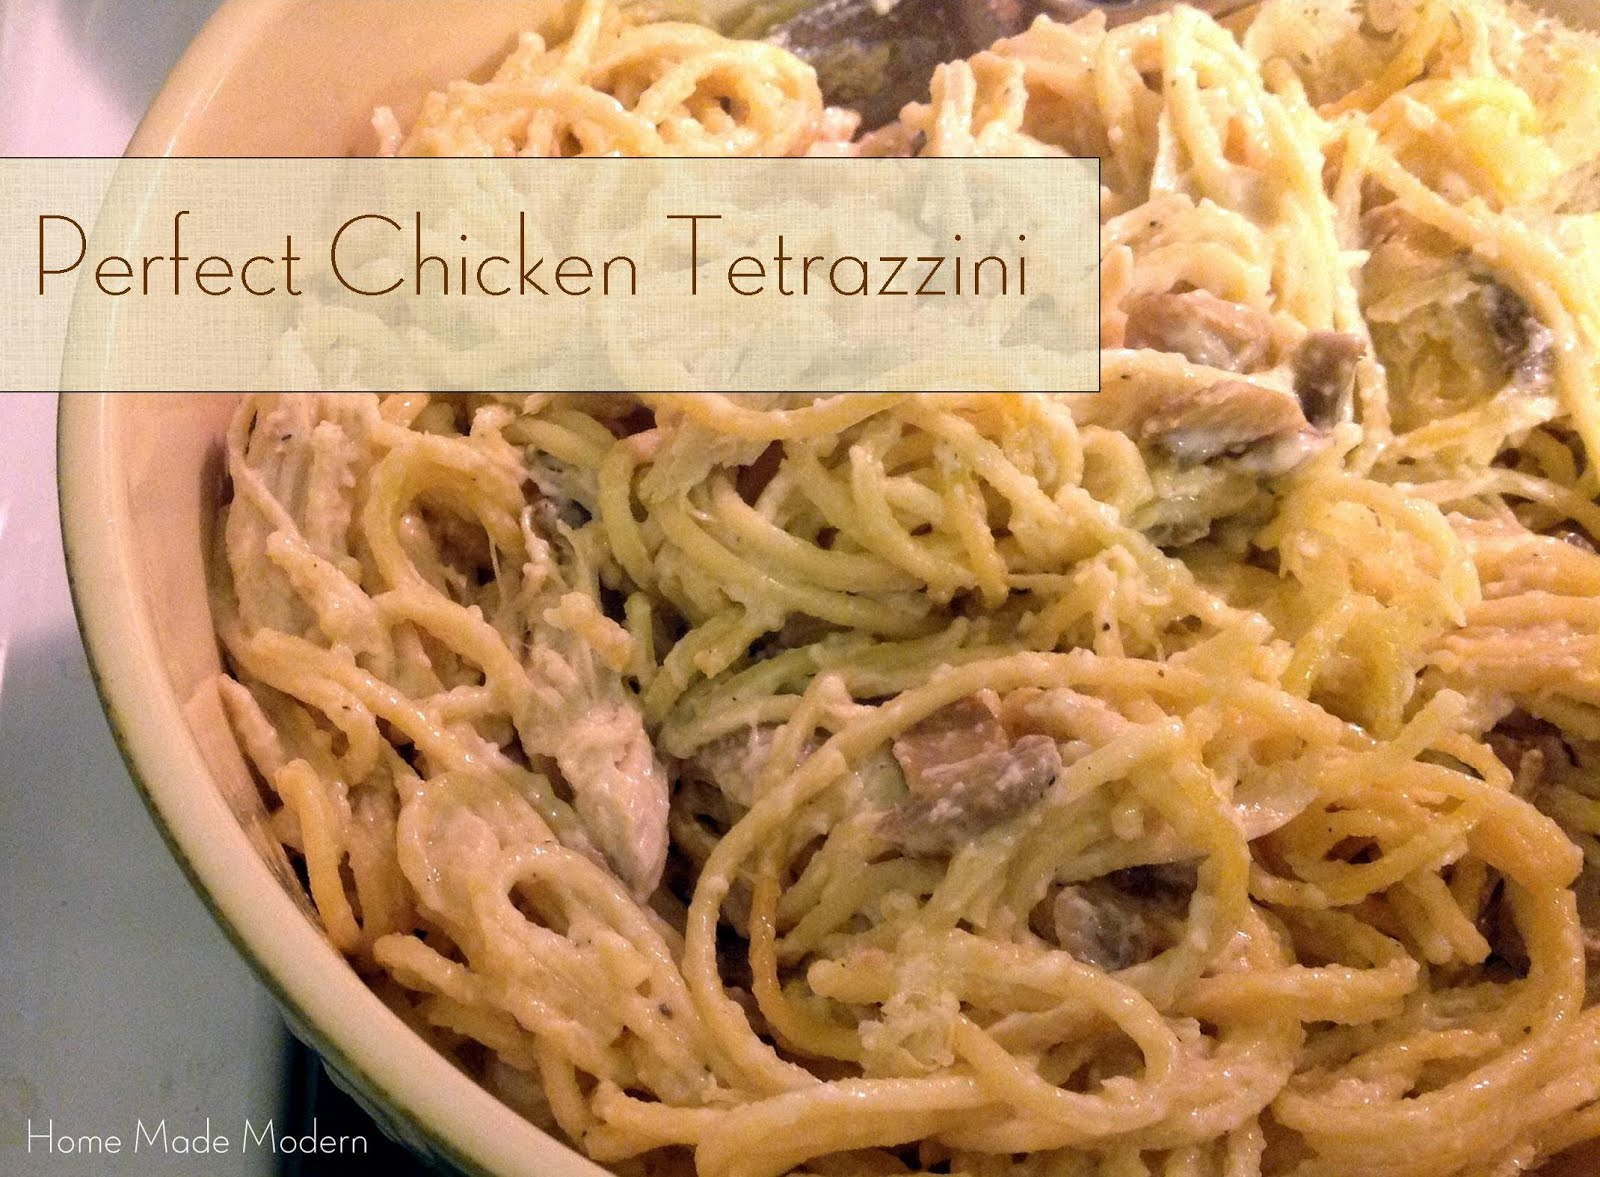 ... Modern: Recipe of the Week: The Best Tetrazzini Recipe You'll Ever Eat